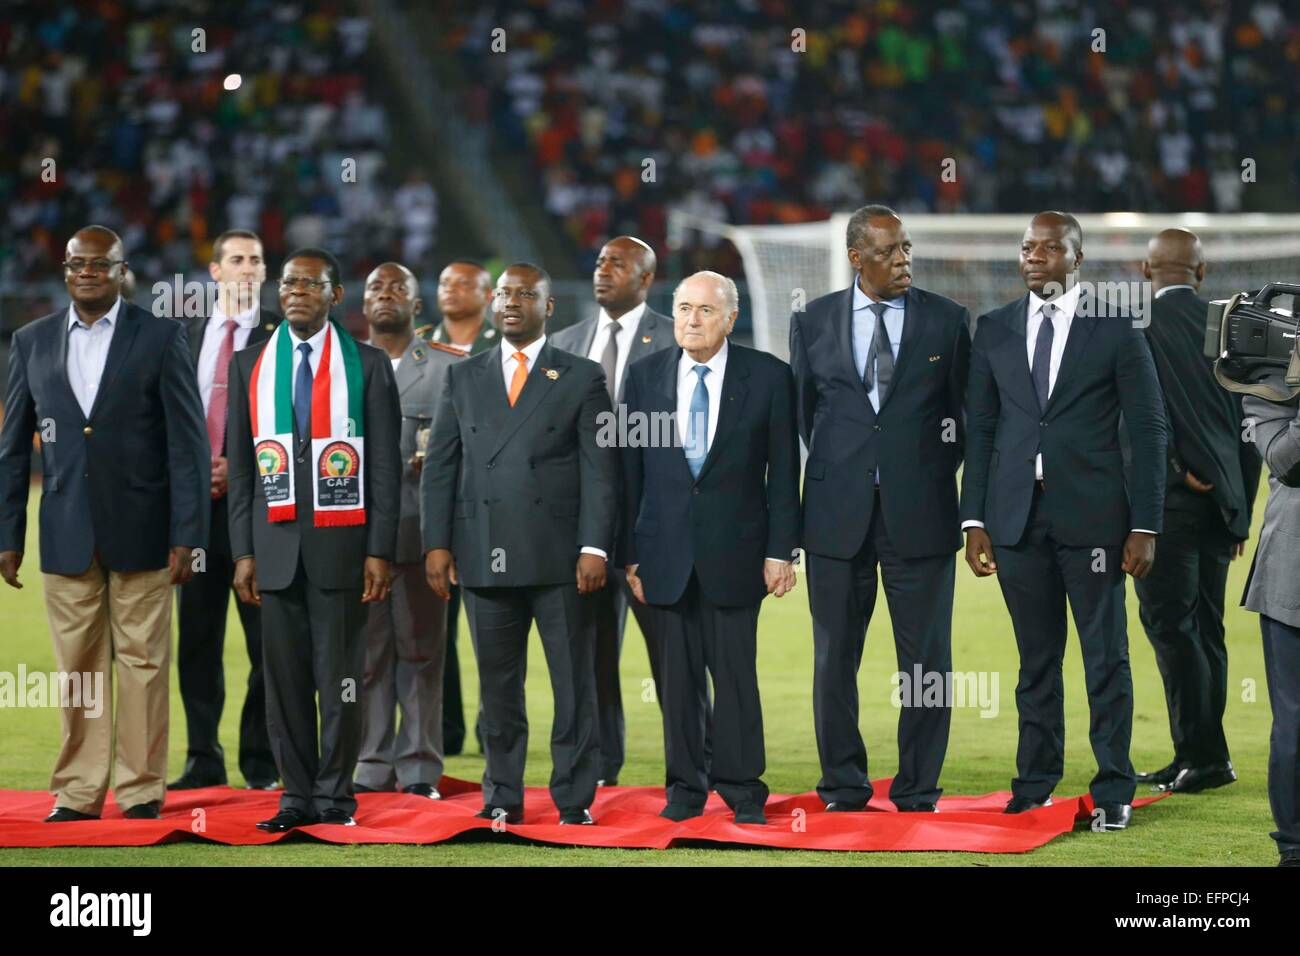 Teodoro Obiang Nguema Mbasogo (2nd left) and Fifa President Sepp Blatter (4th L) during their Africa Cup of Nations - Stock Image